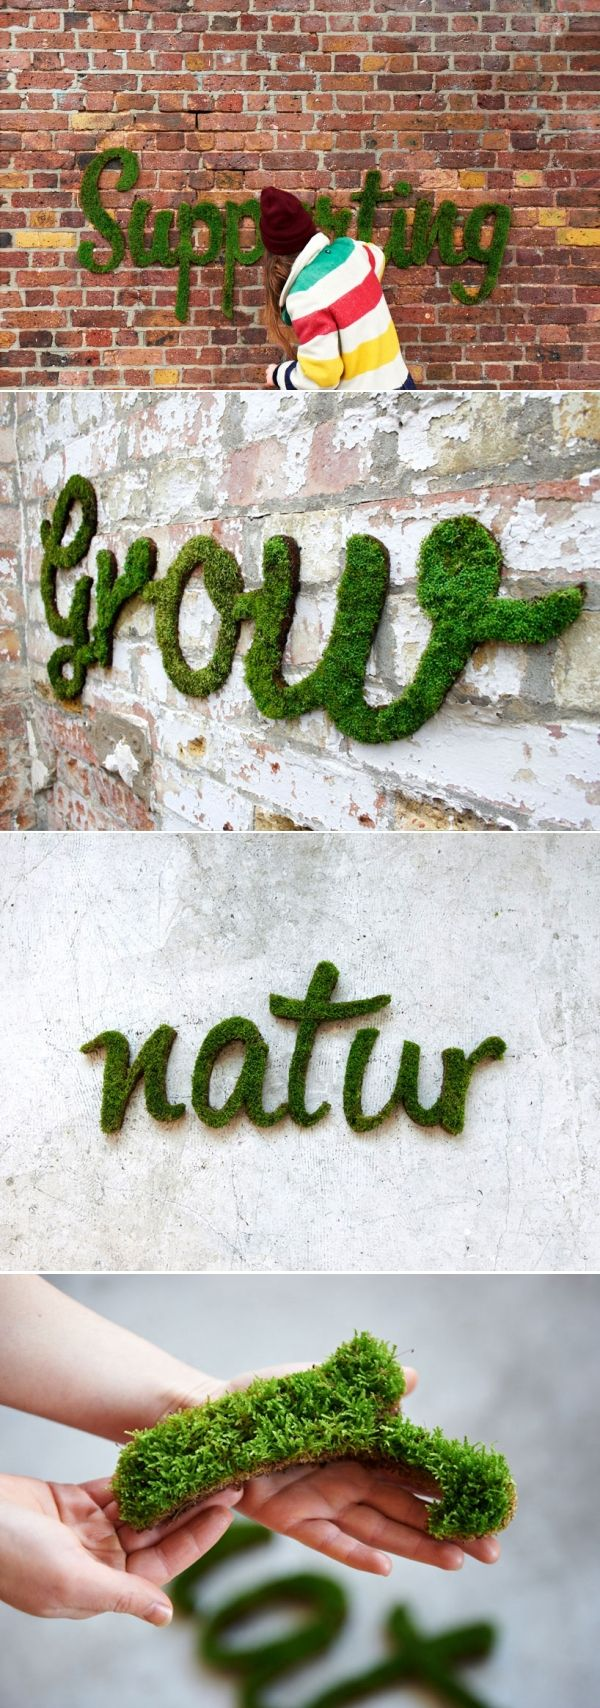 moss graffiti grows on walls by anna garforth #natural #typography http://arcreactions.com/pure-form/